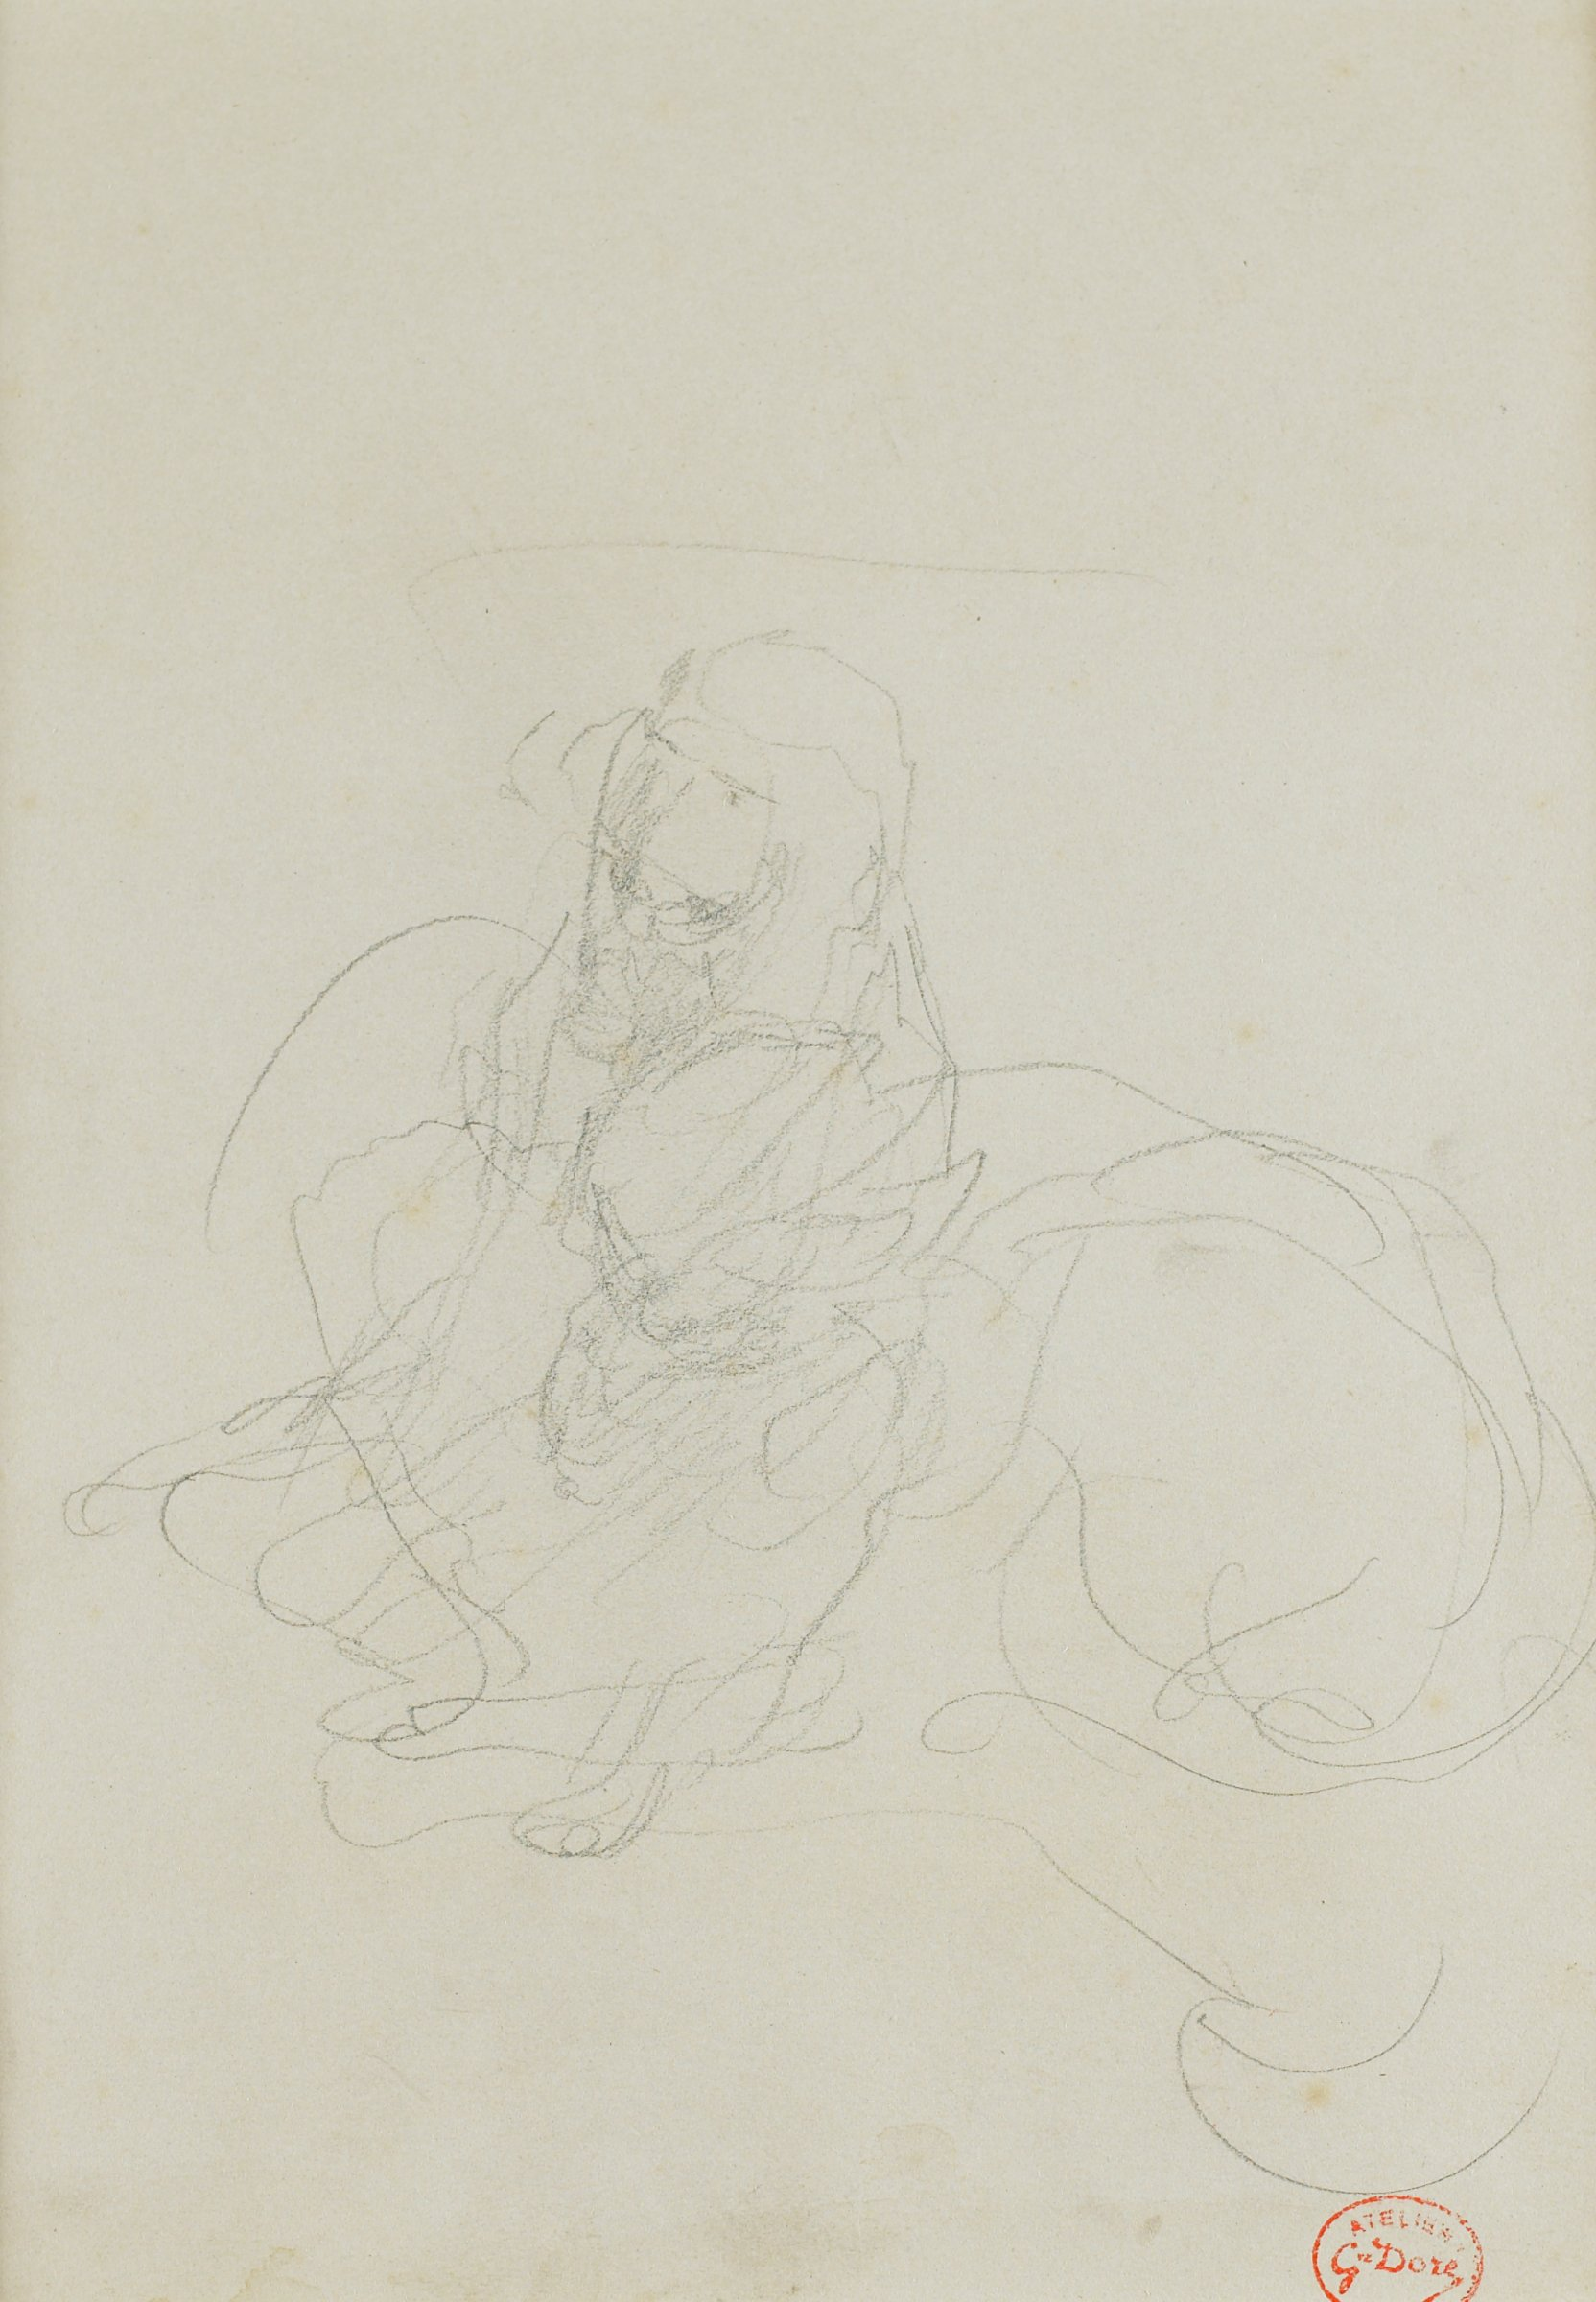 A sketch of a monkey in the center with a cat leaning in from the right.